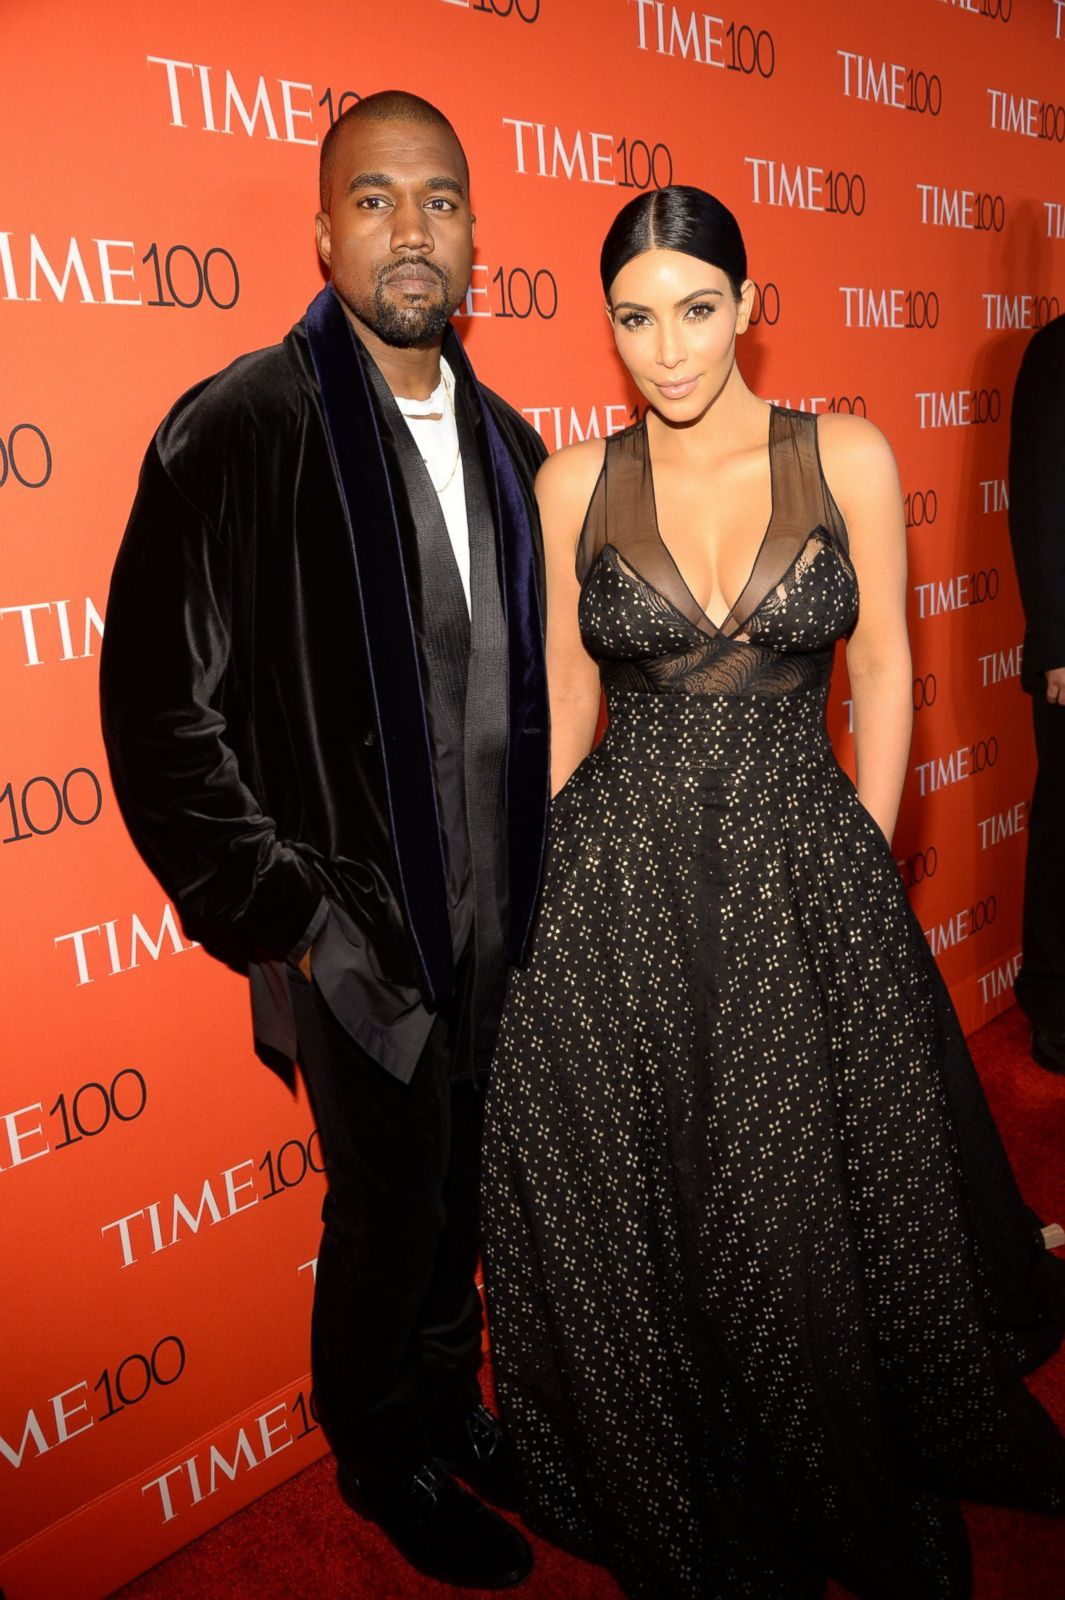 Black dress kim kardashian 6 months